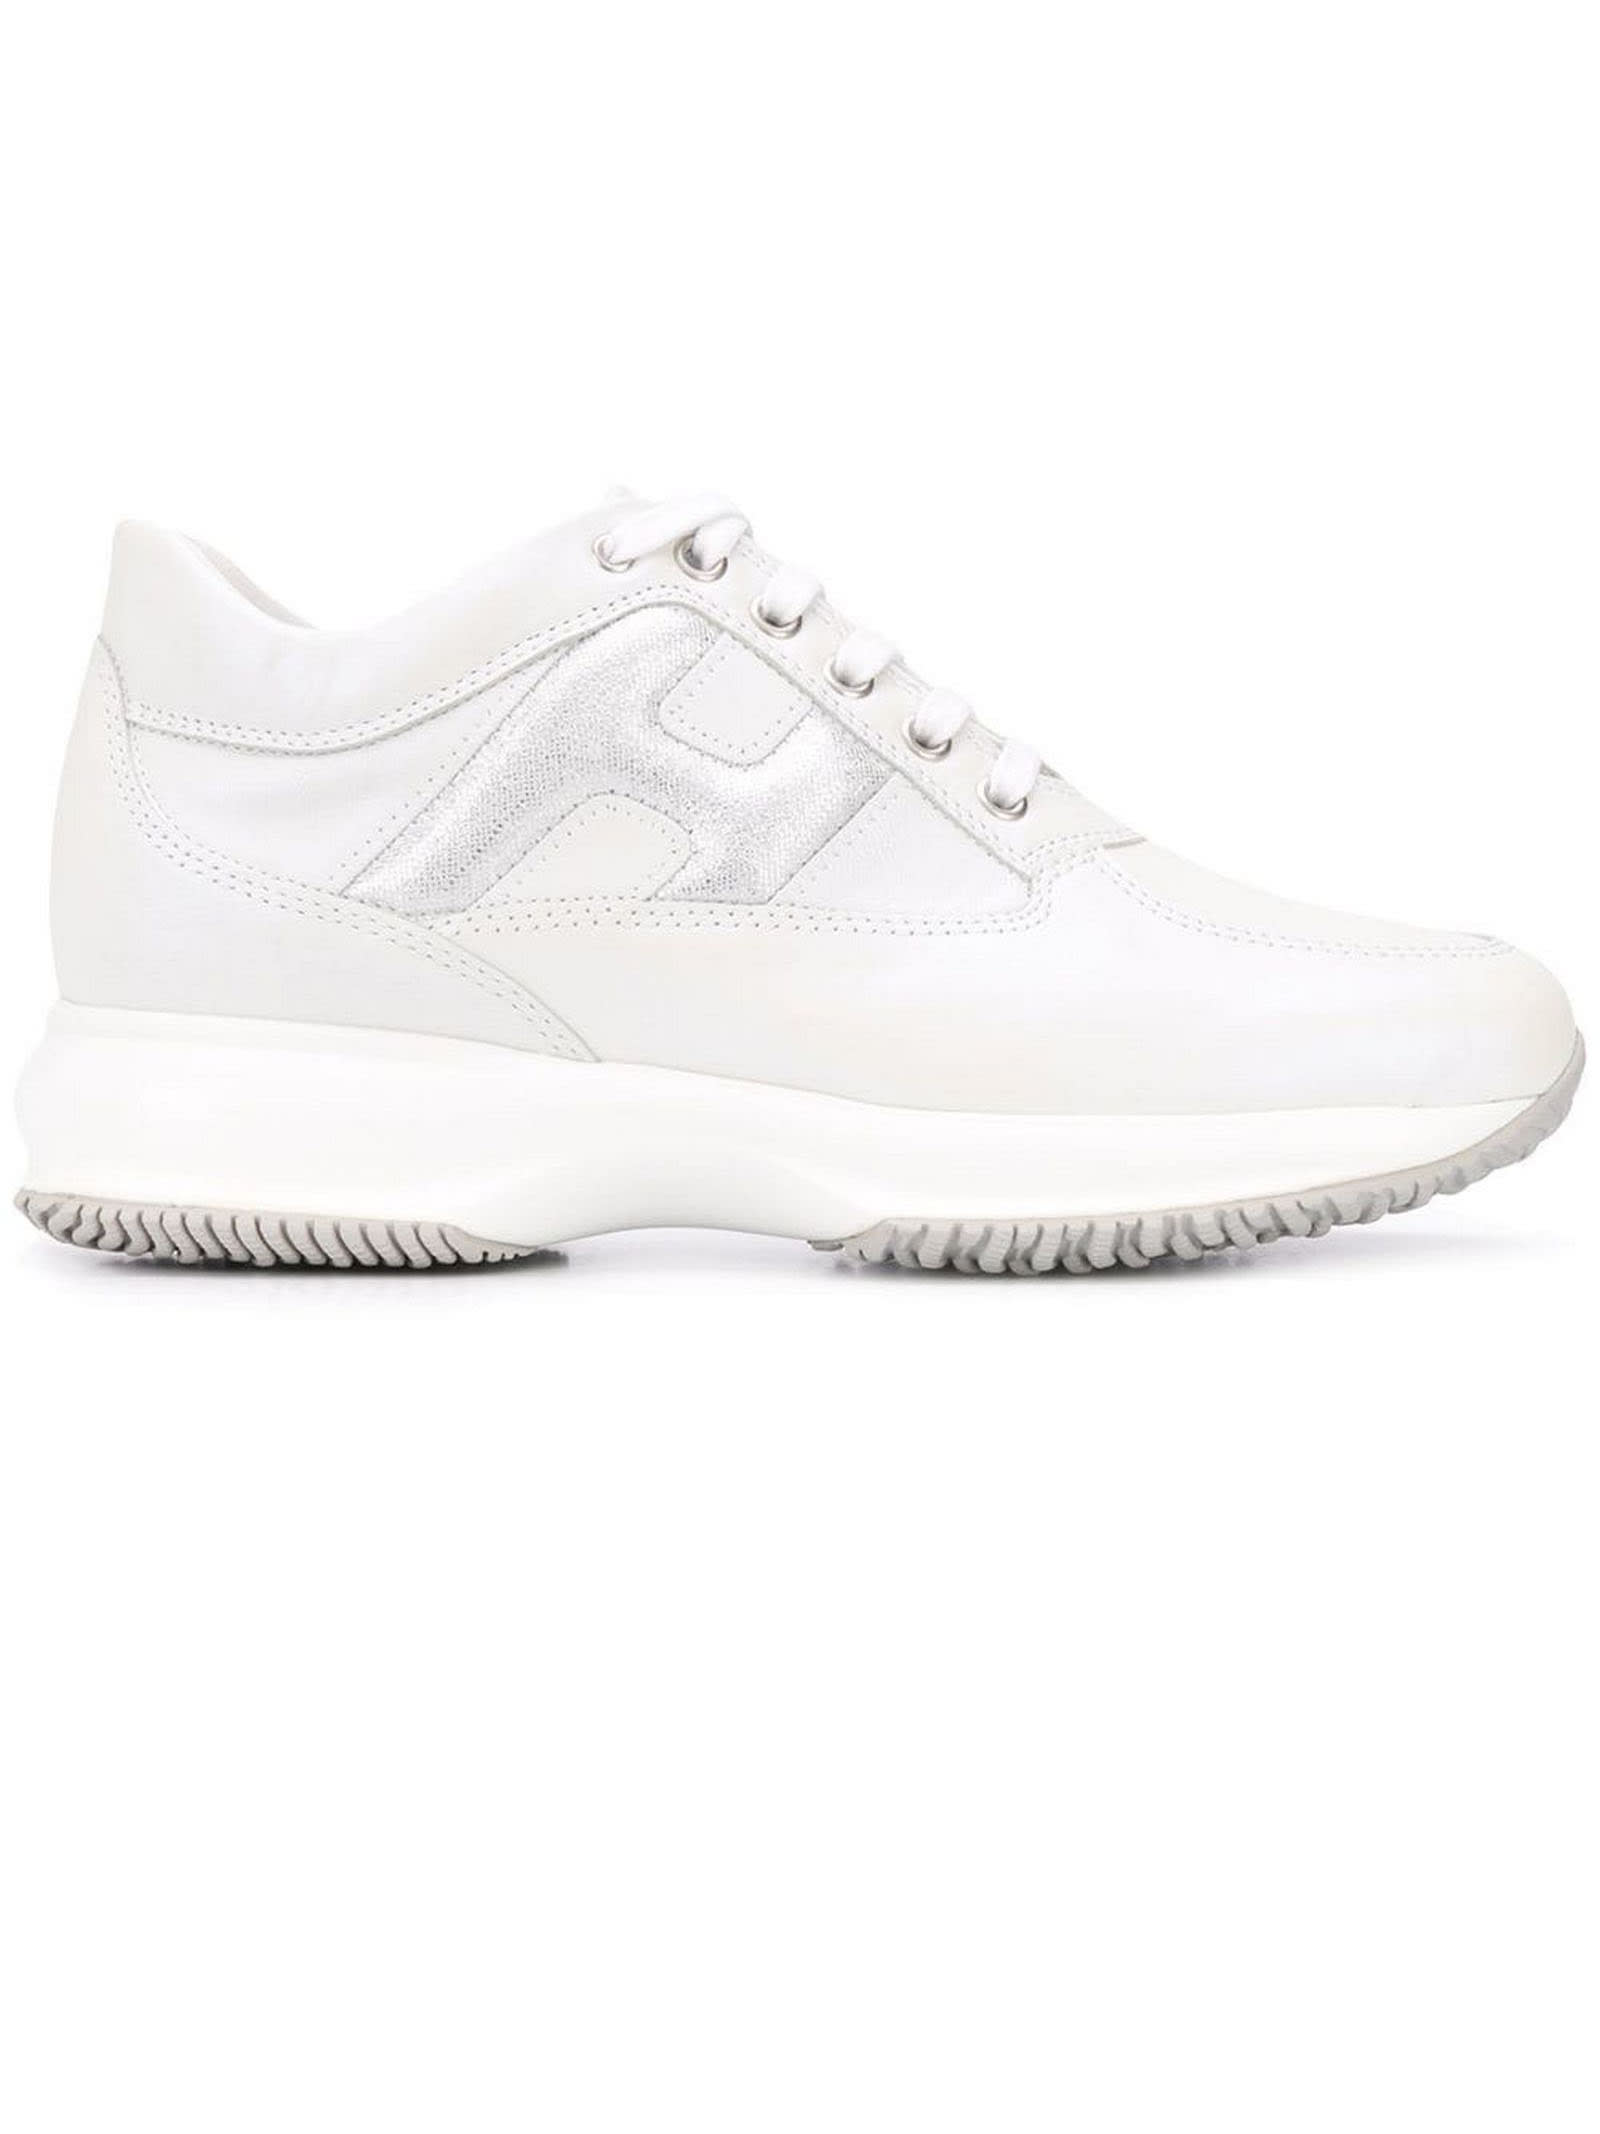 Shop Hogan White Interactive Sneakers In Argento bianco